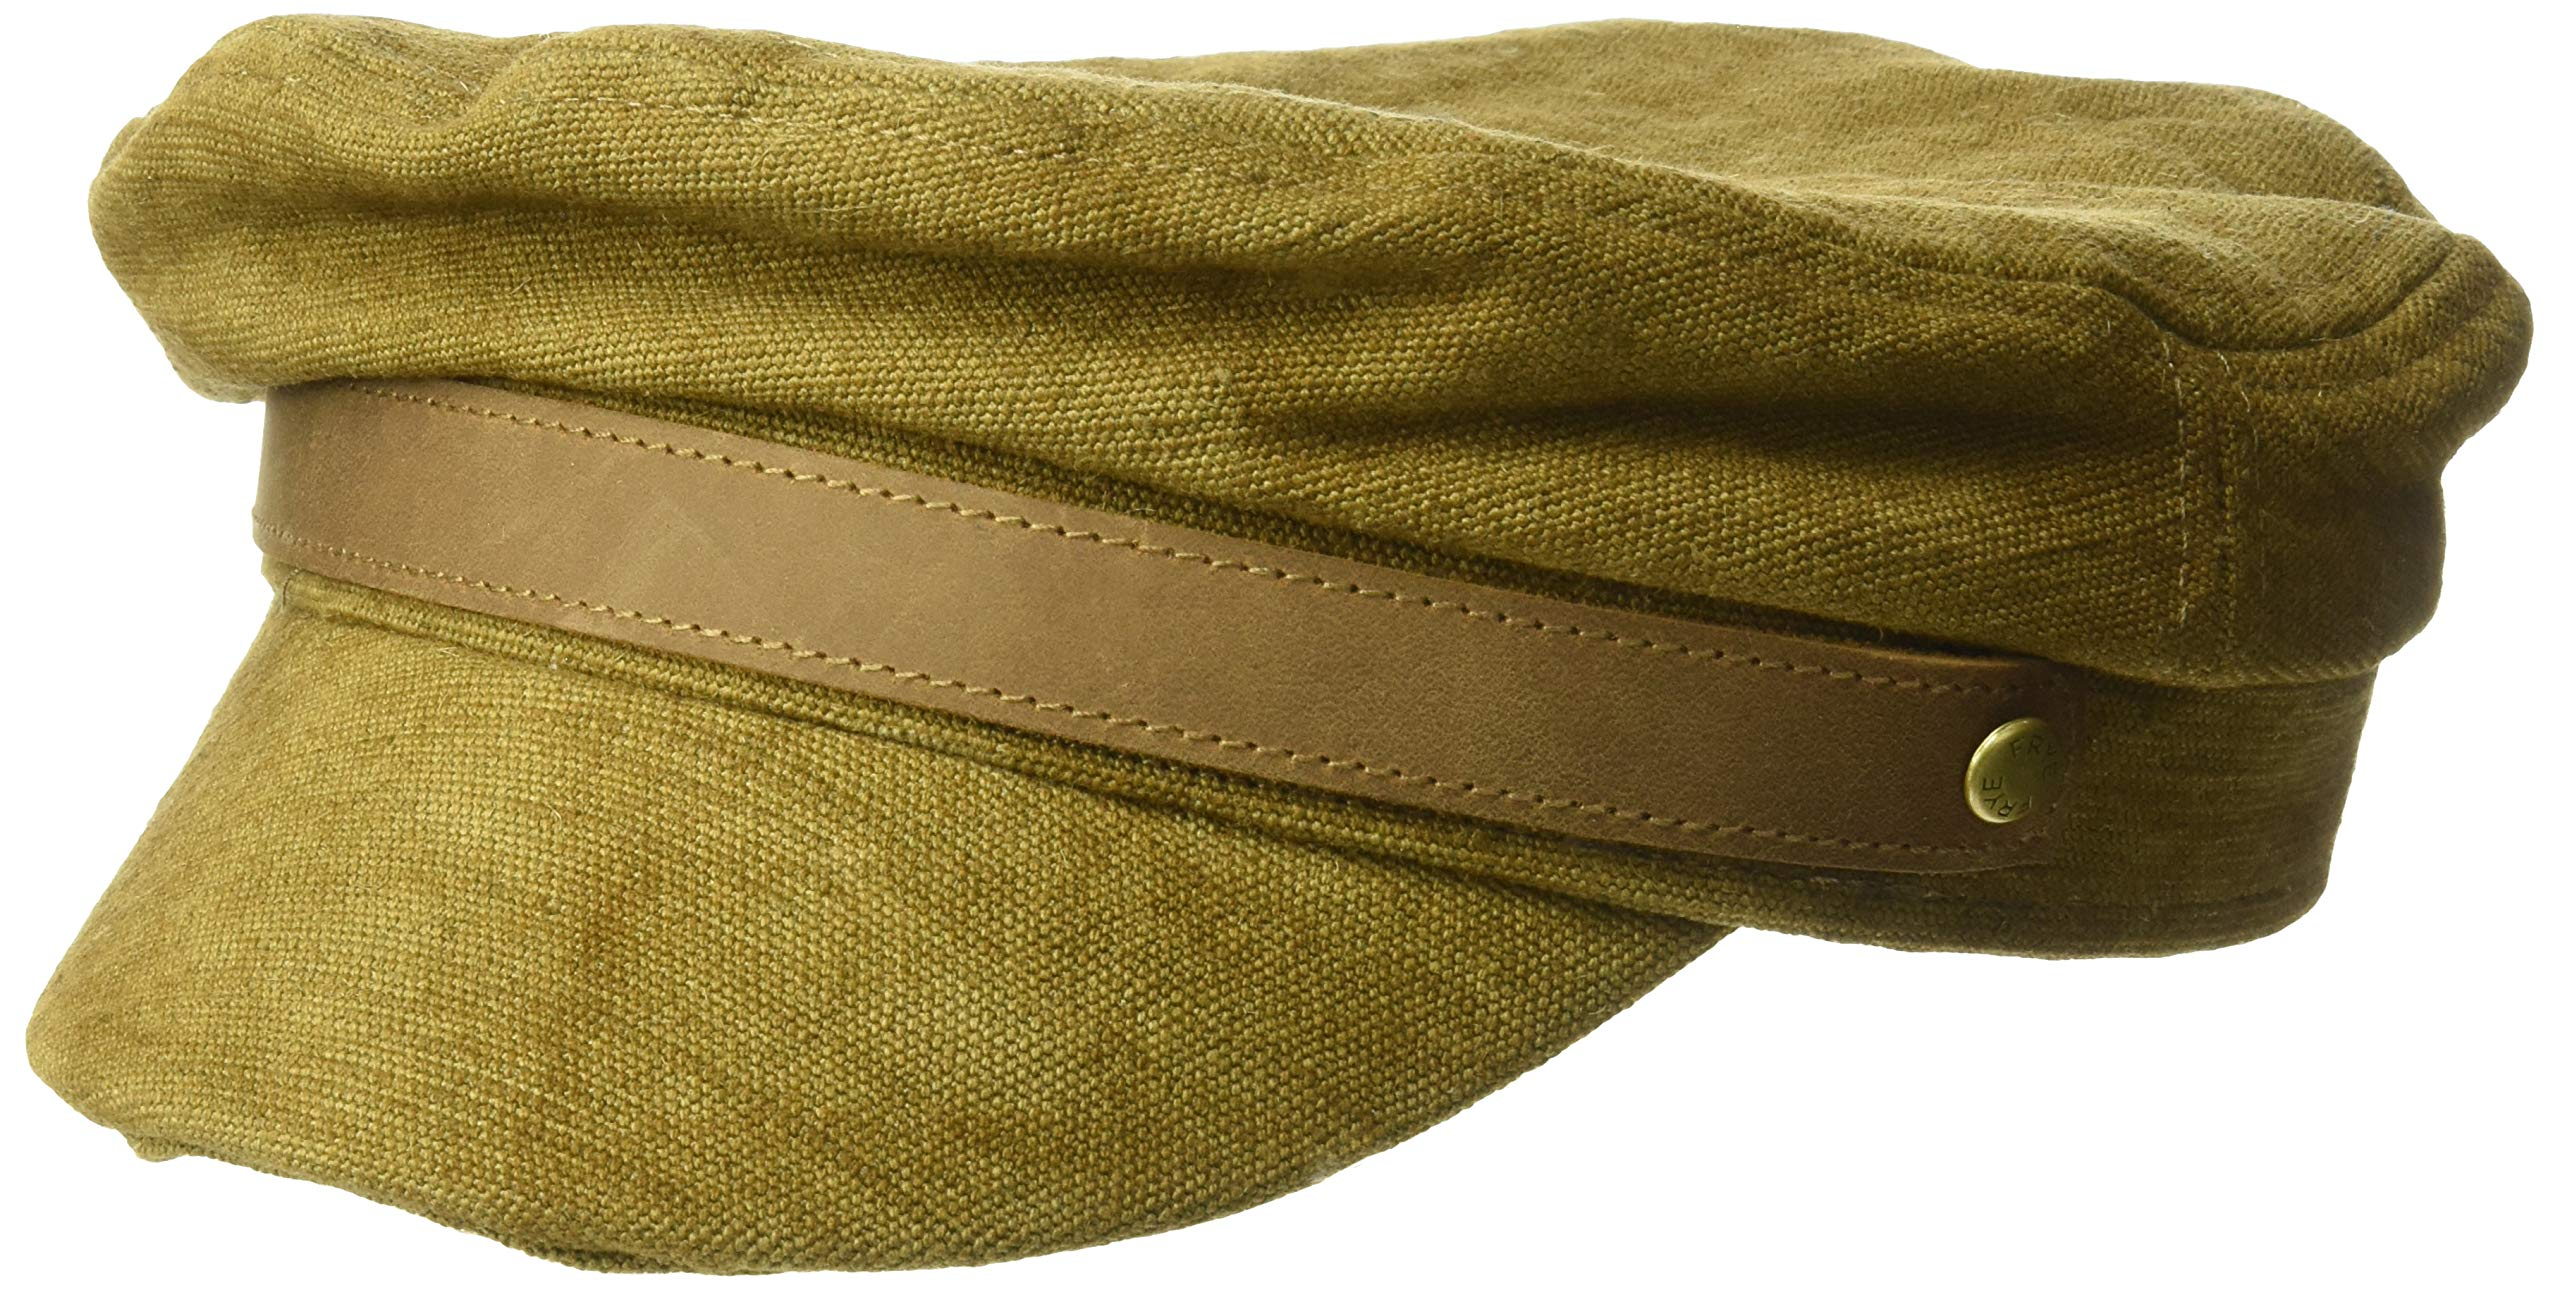 Frye Headwear Women's Frye Canvas Fiddler, Bark, Medium/Large by Frye Headwear